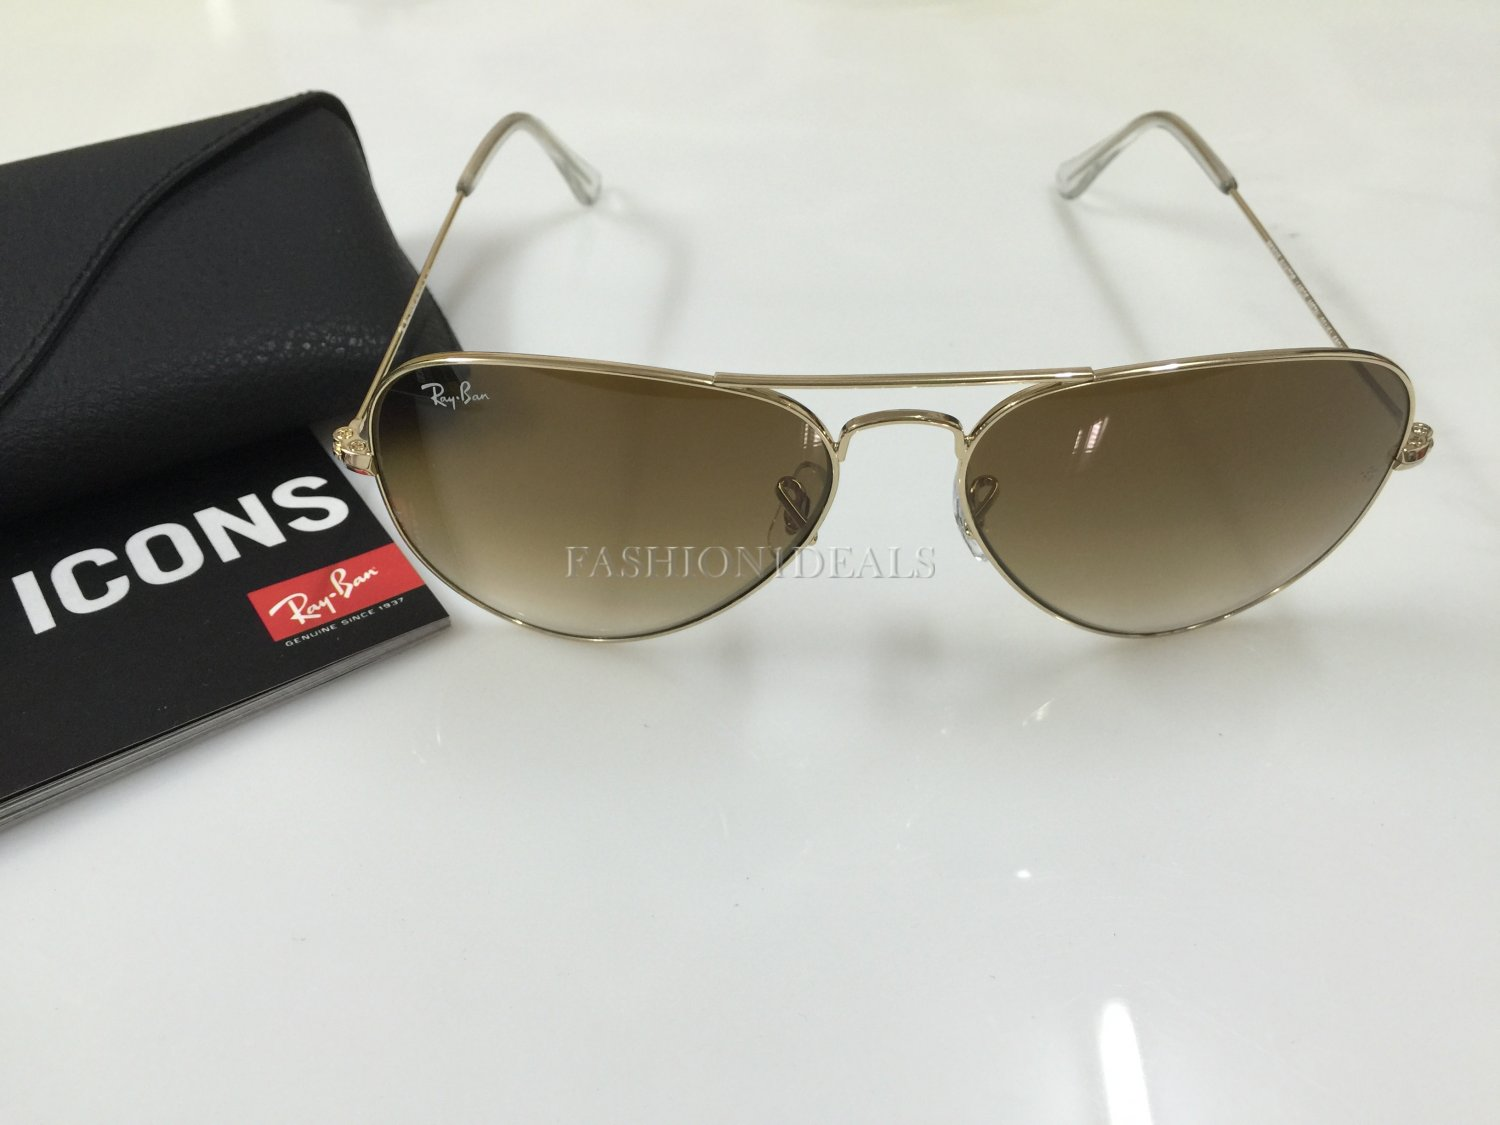 100% AUTHENTIC RAY BAN 3025 001/51 BROWN GRADIENT AVIATOR SUNGLASSES!